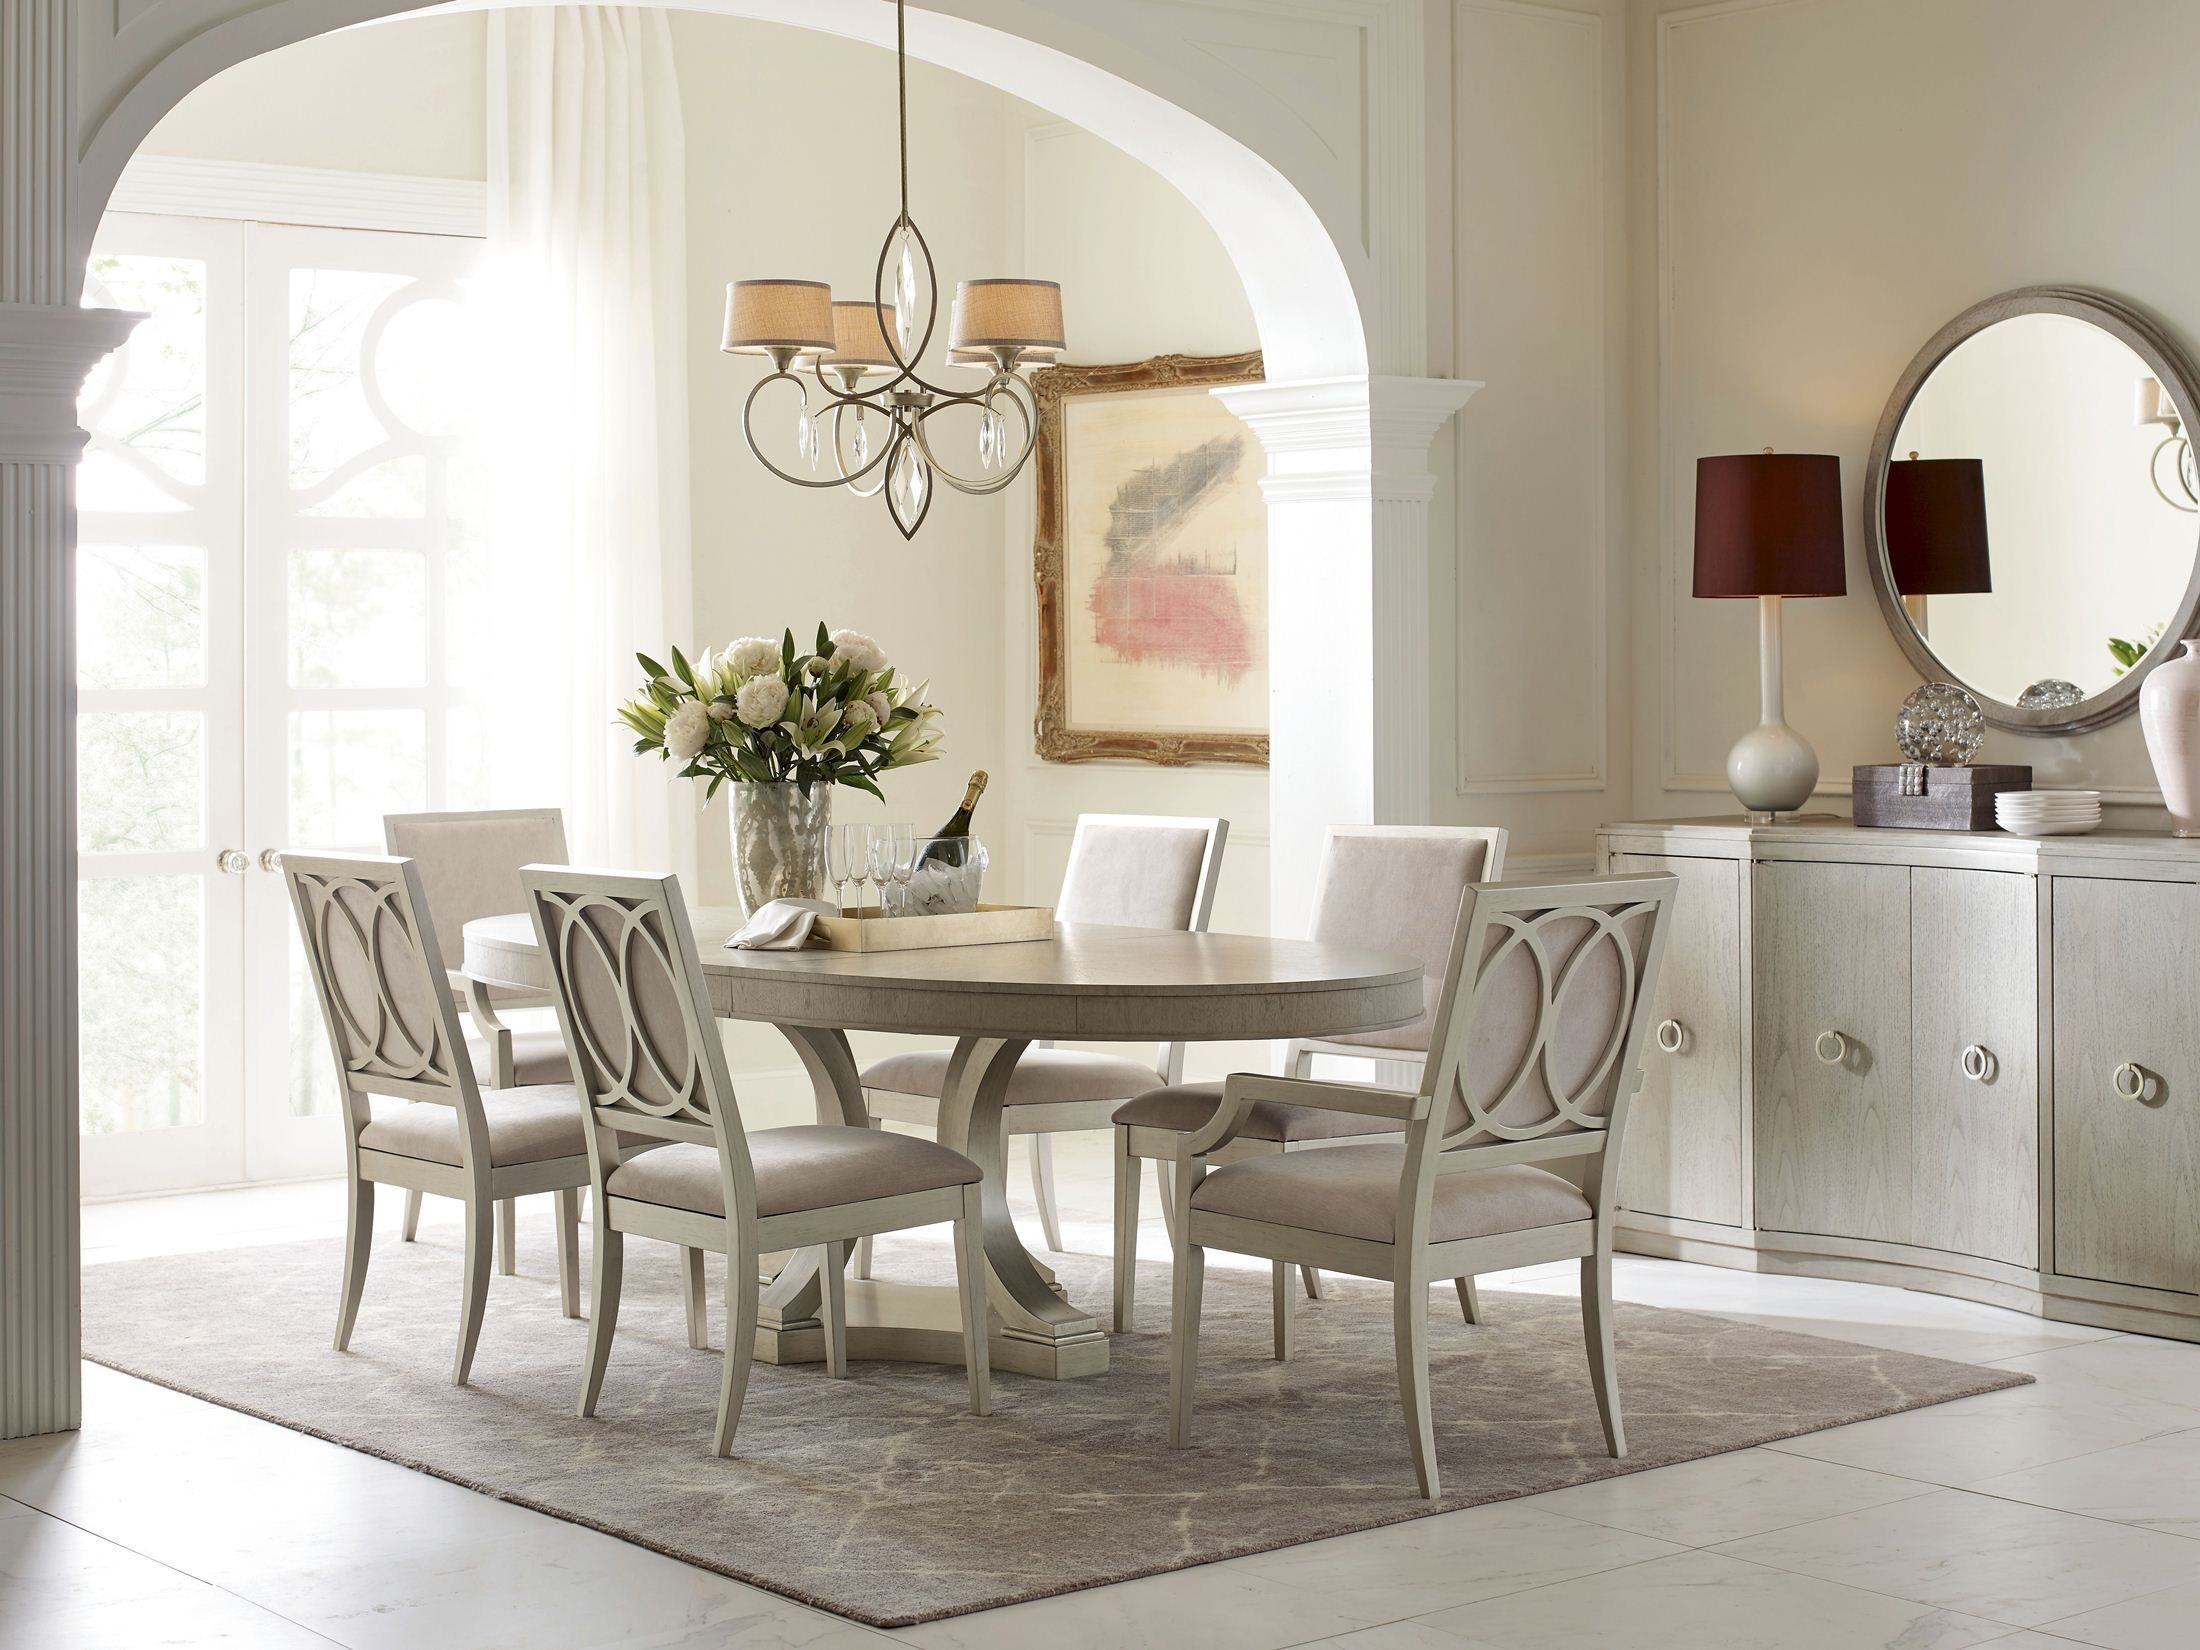 Cinema Shadow Grey Oval Extendable Dining Room Set From